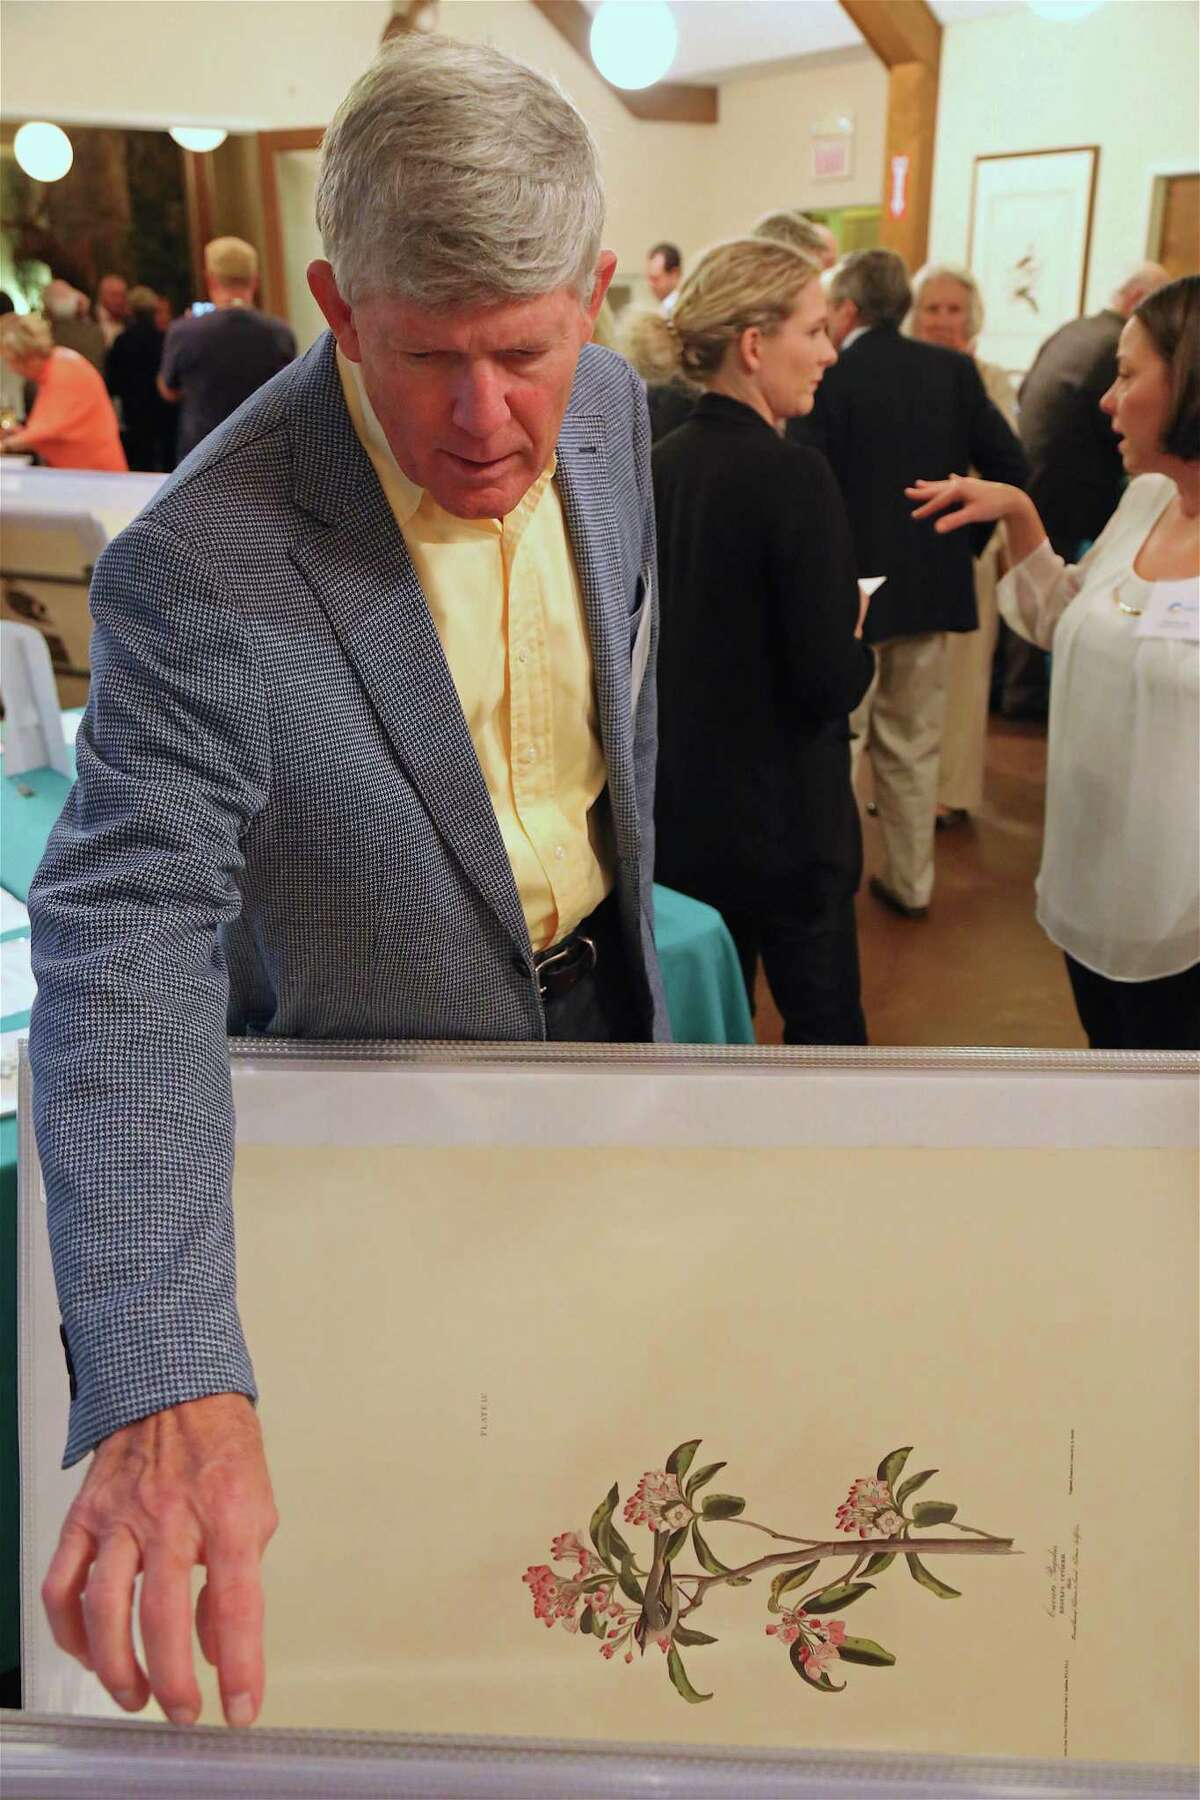 Christopher Wright of Southport explores some prints at the Fall Nature Festival's evening reception at The Connecticut Audubon Society, Friday, Oct. 4, 2019, in Fairfield, Conn.